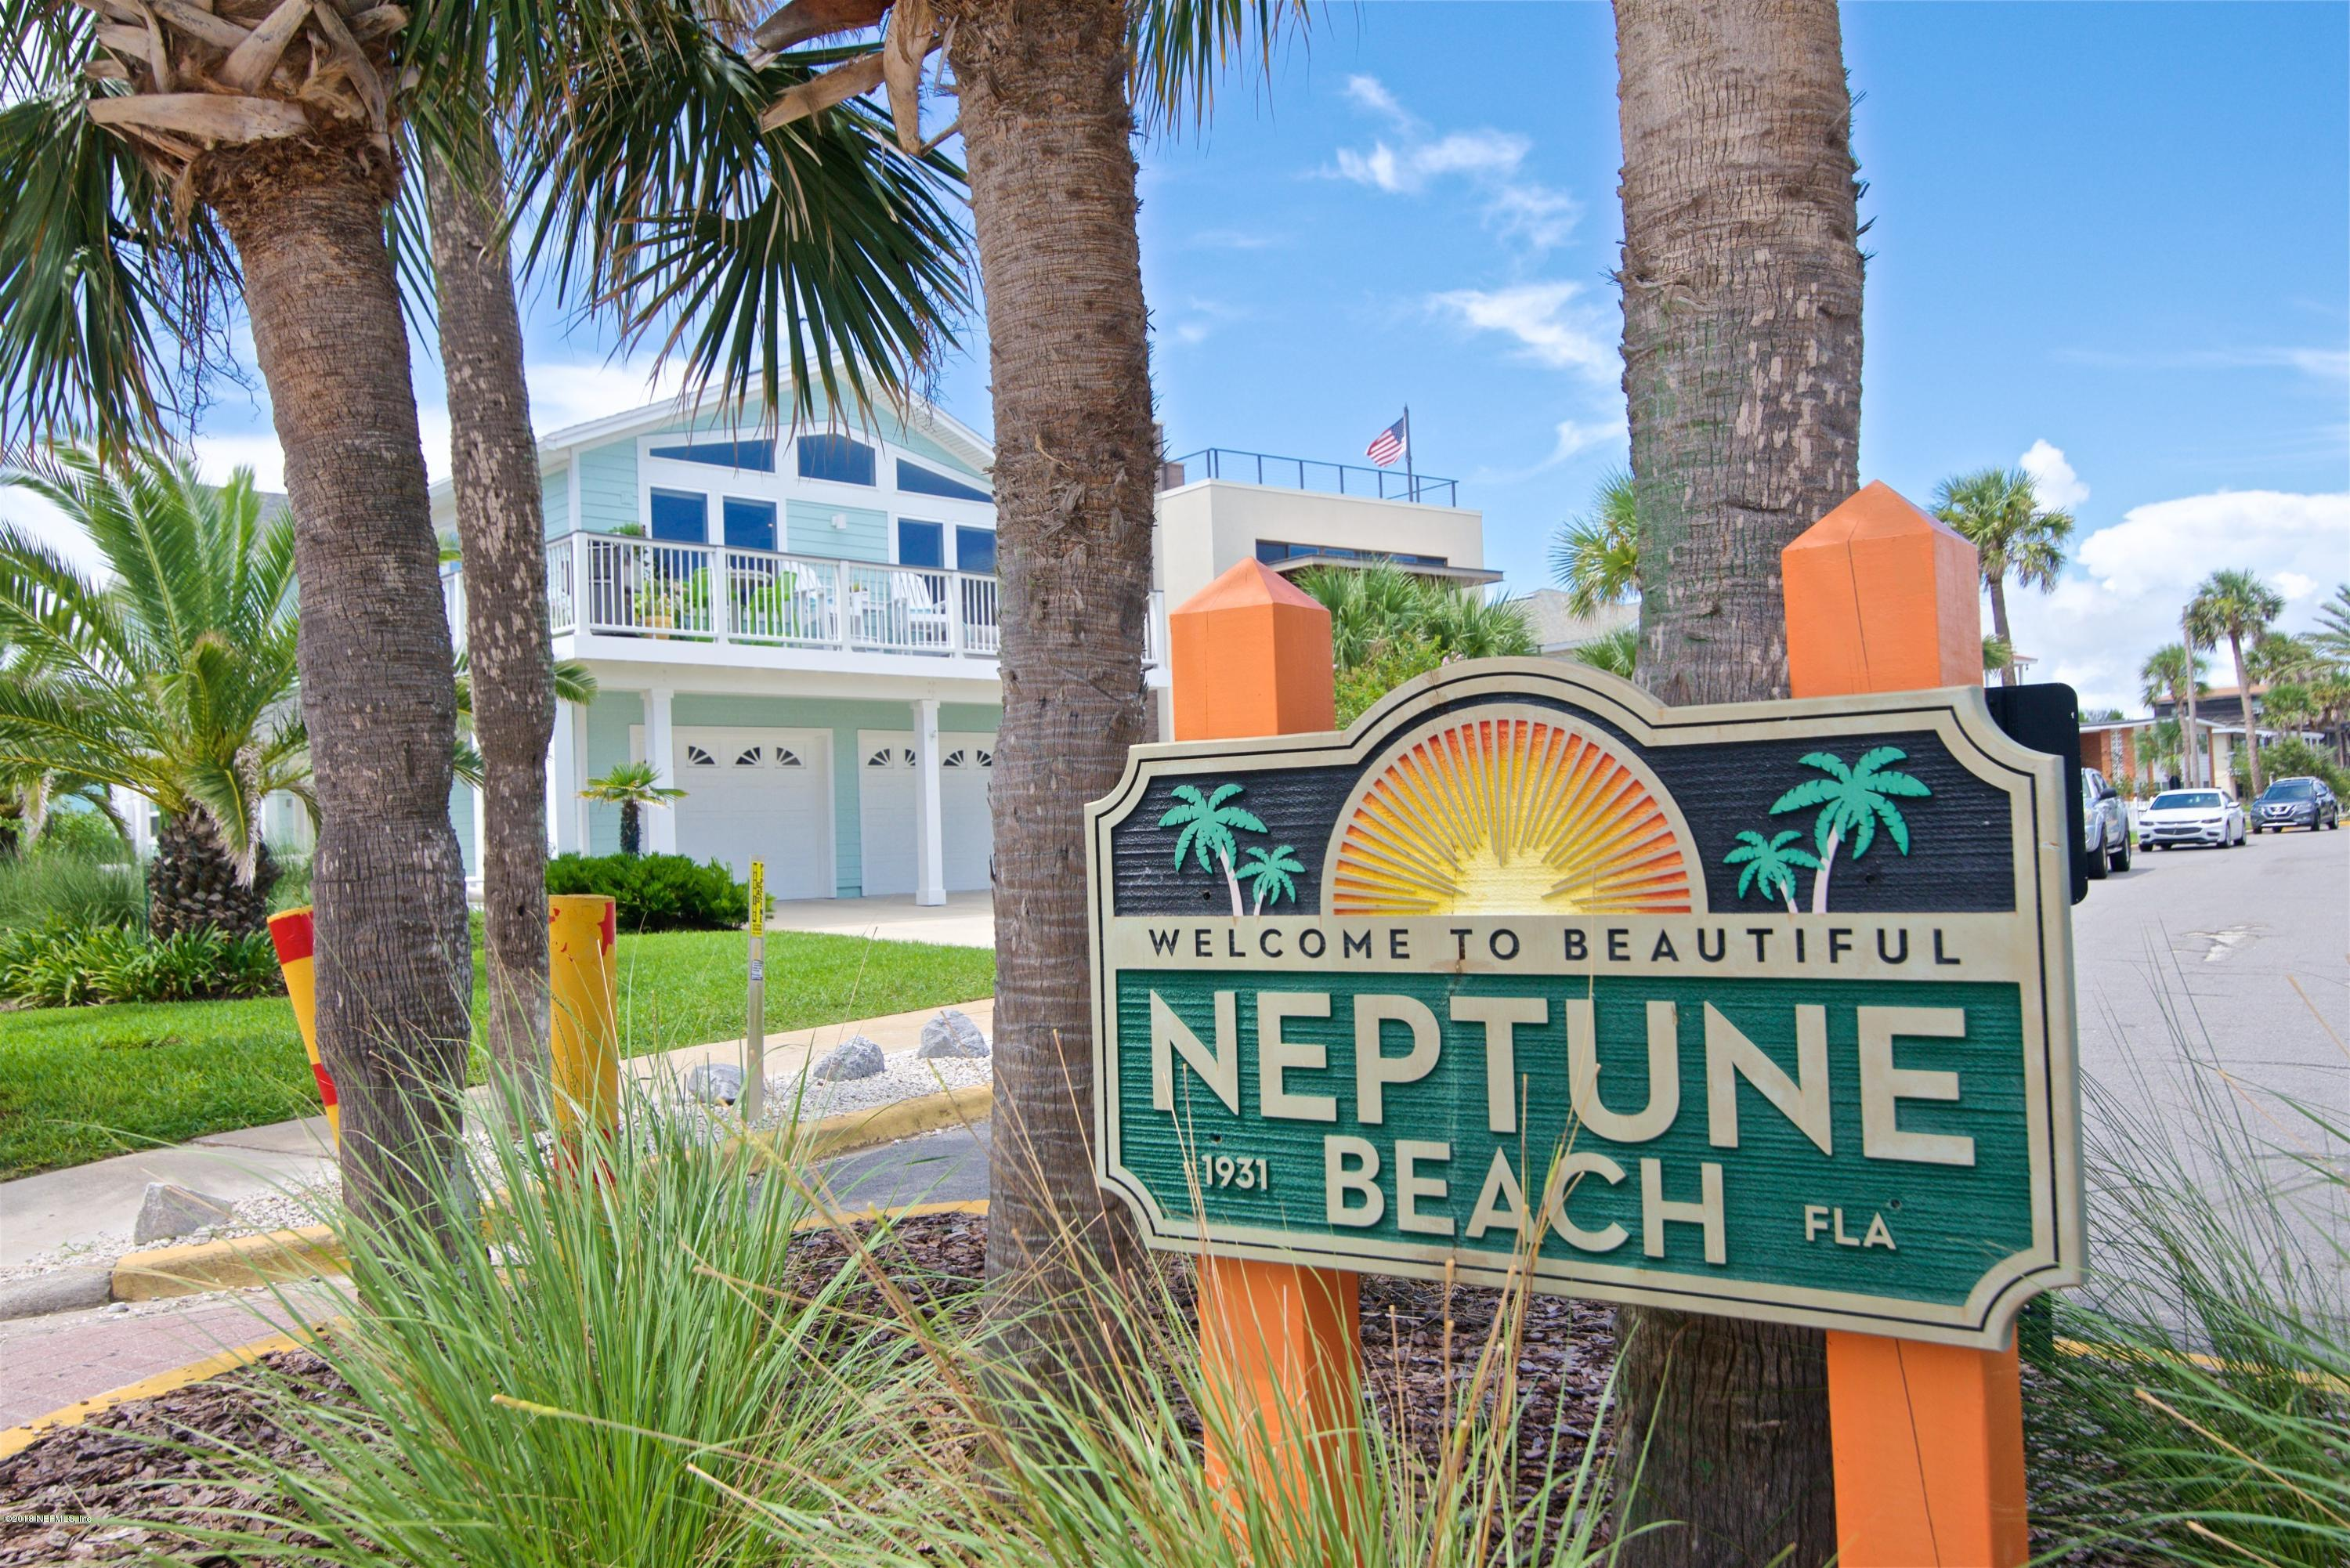 Neptune Beach Offically starts here!